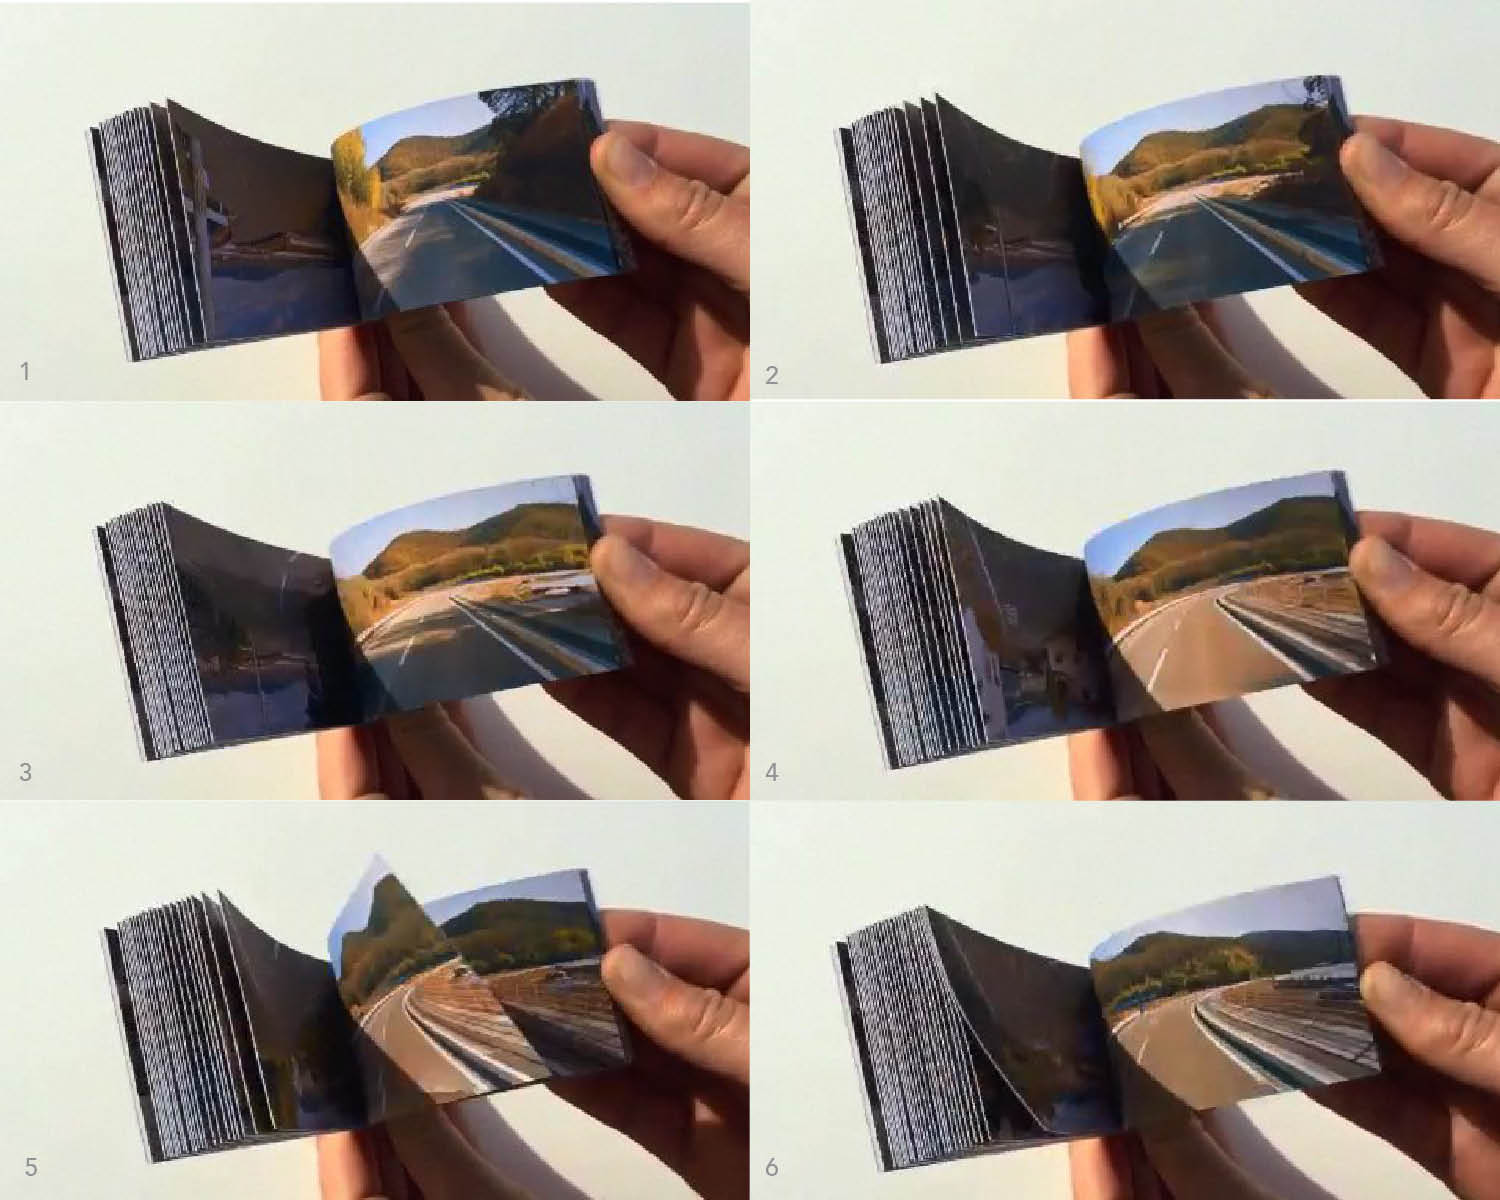 Stills from a movie showing the progression of Google map images in one of the flip books